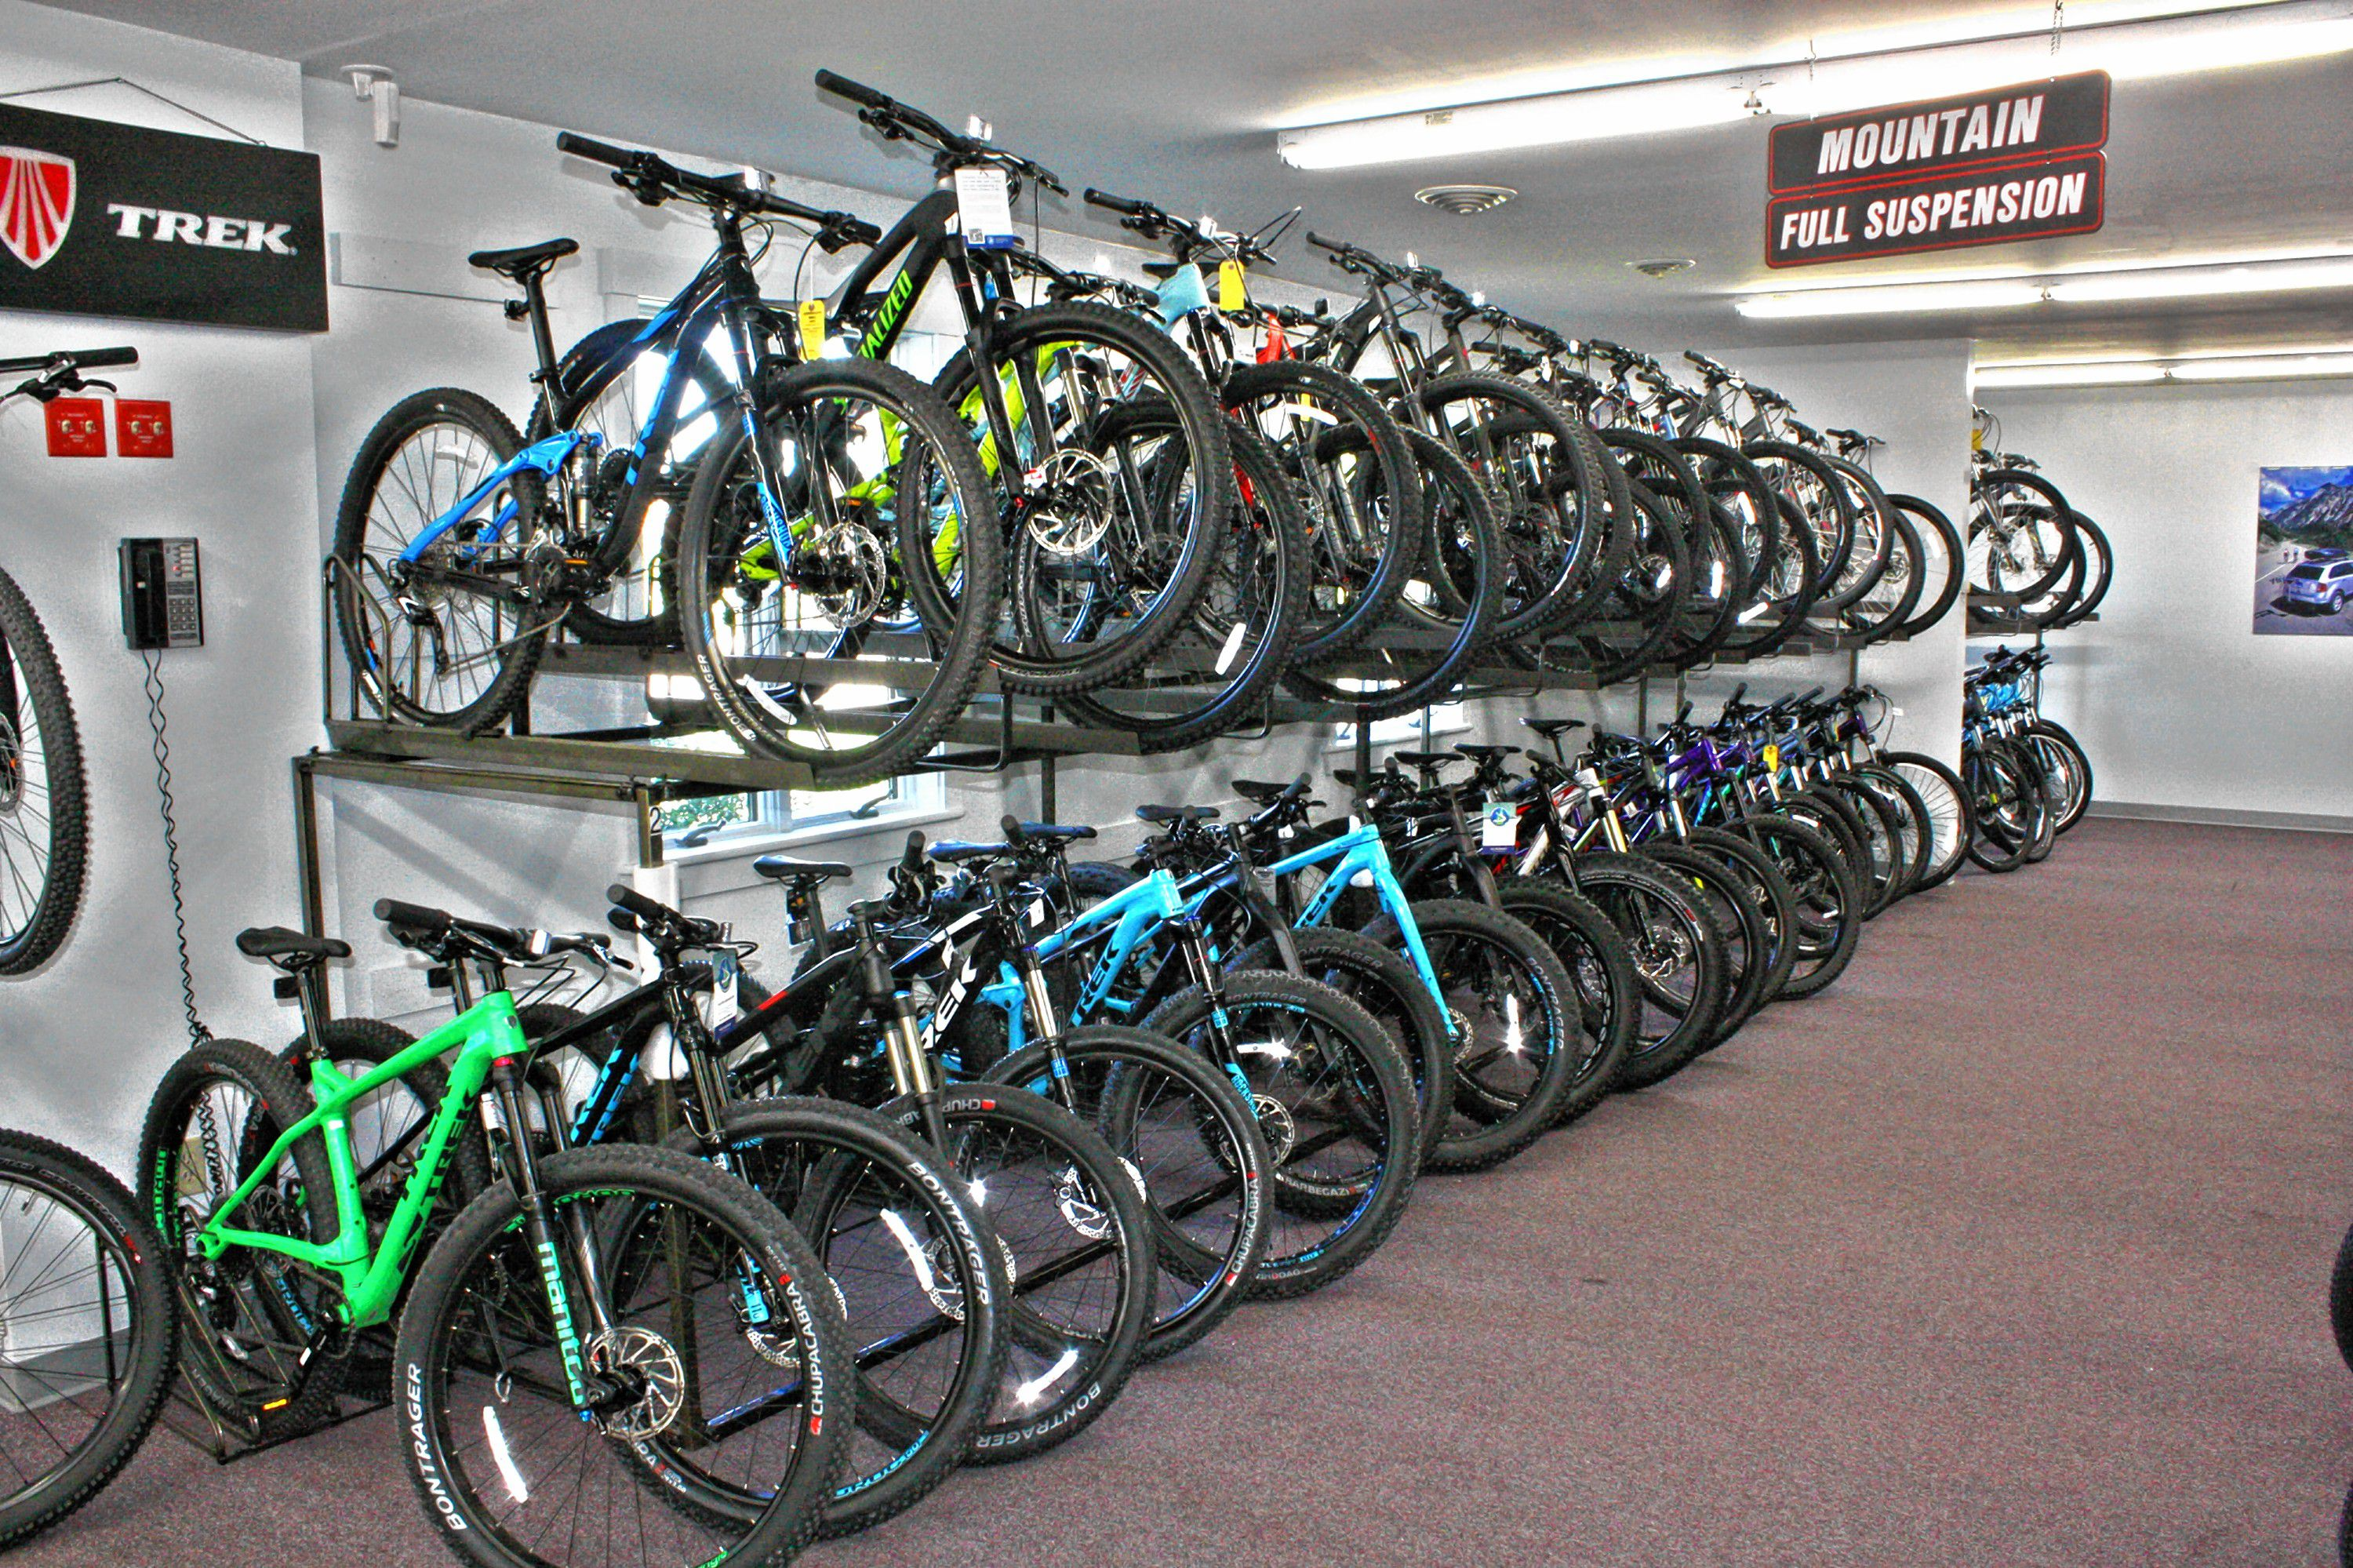 Mount Bike Shop Whether You Re Looking For A Mountain Bike A Road Bike A Hybrid